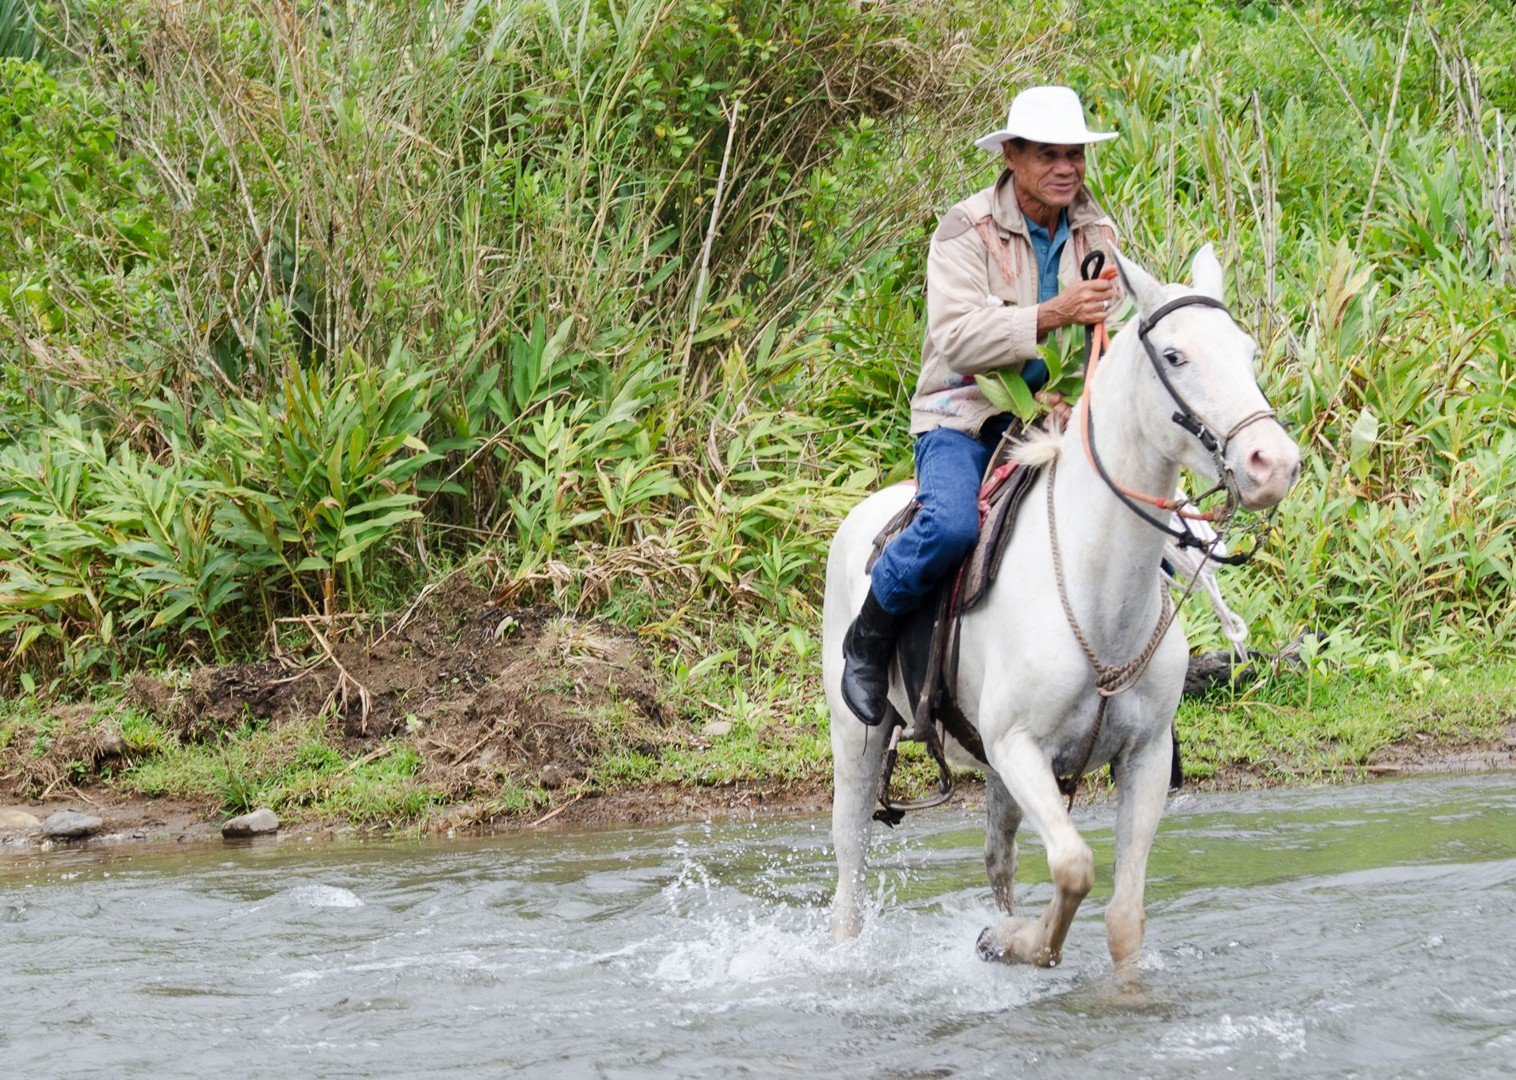 horse-riding-costa-rica-volcanoes-and-valleys.jpg - Costa Rica - Volcanoes and Valleys - Guided Family Cycling Holiday - Family Cycling